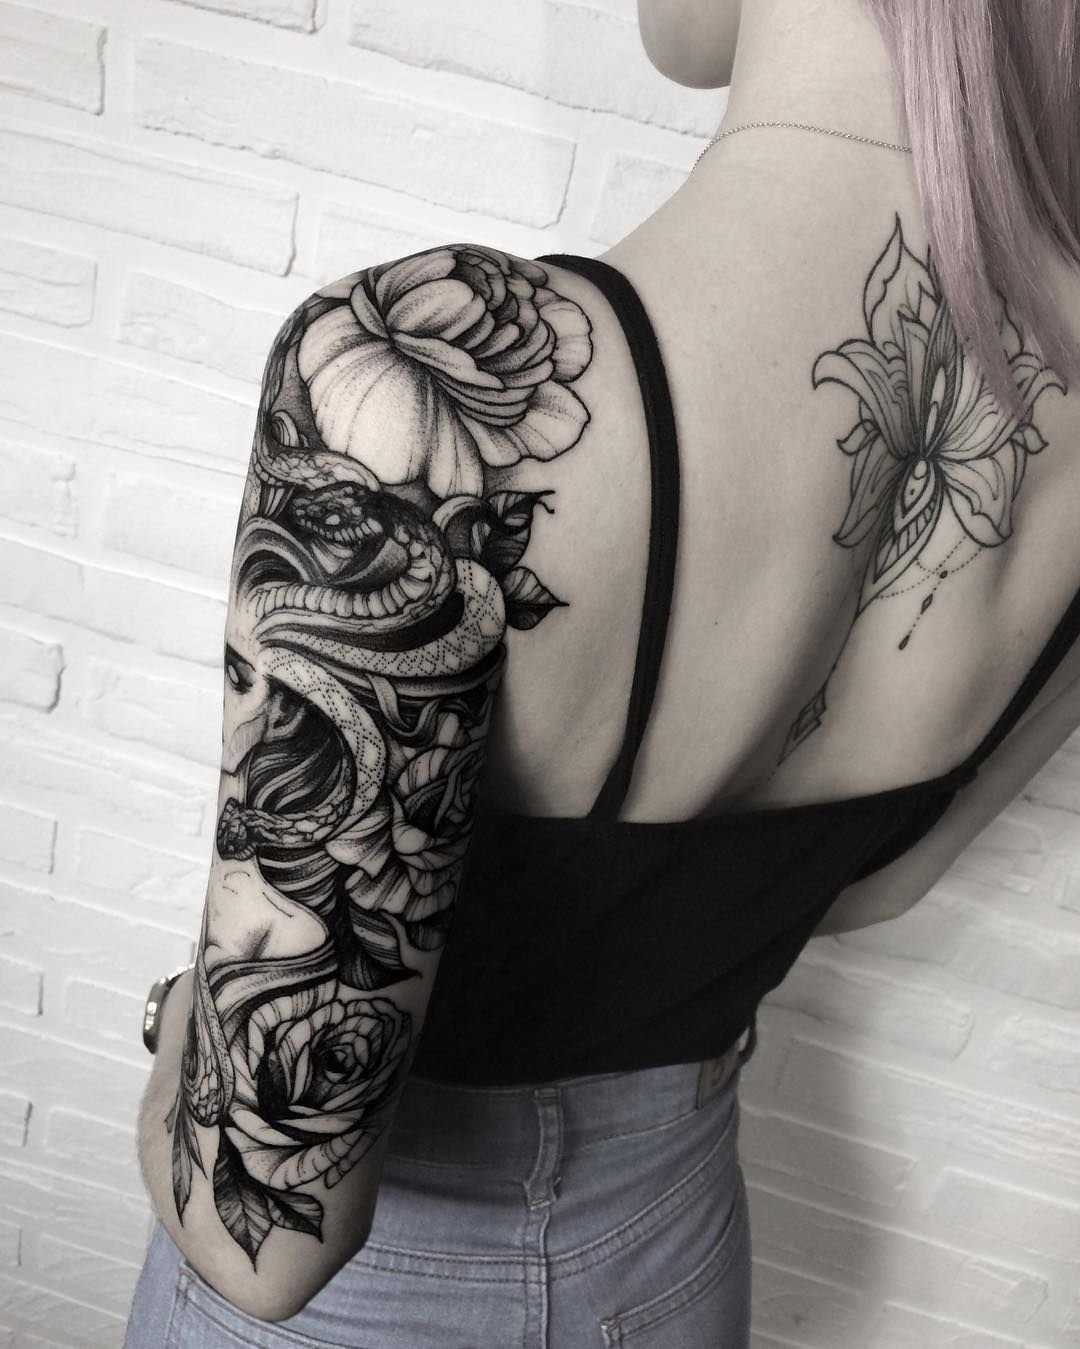 10 Spectacular Sleeve Tattoo Ideas For Girls snake woman sleeve tattoo idea snake tattoos pinterest woman 3 2020